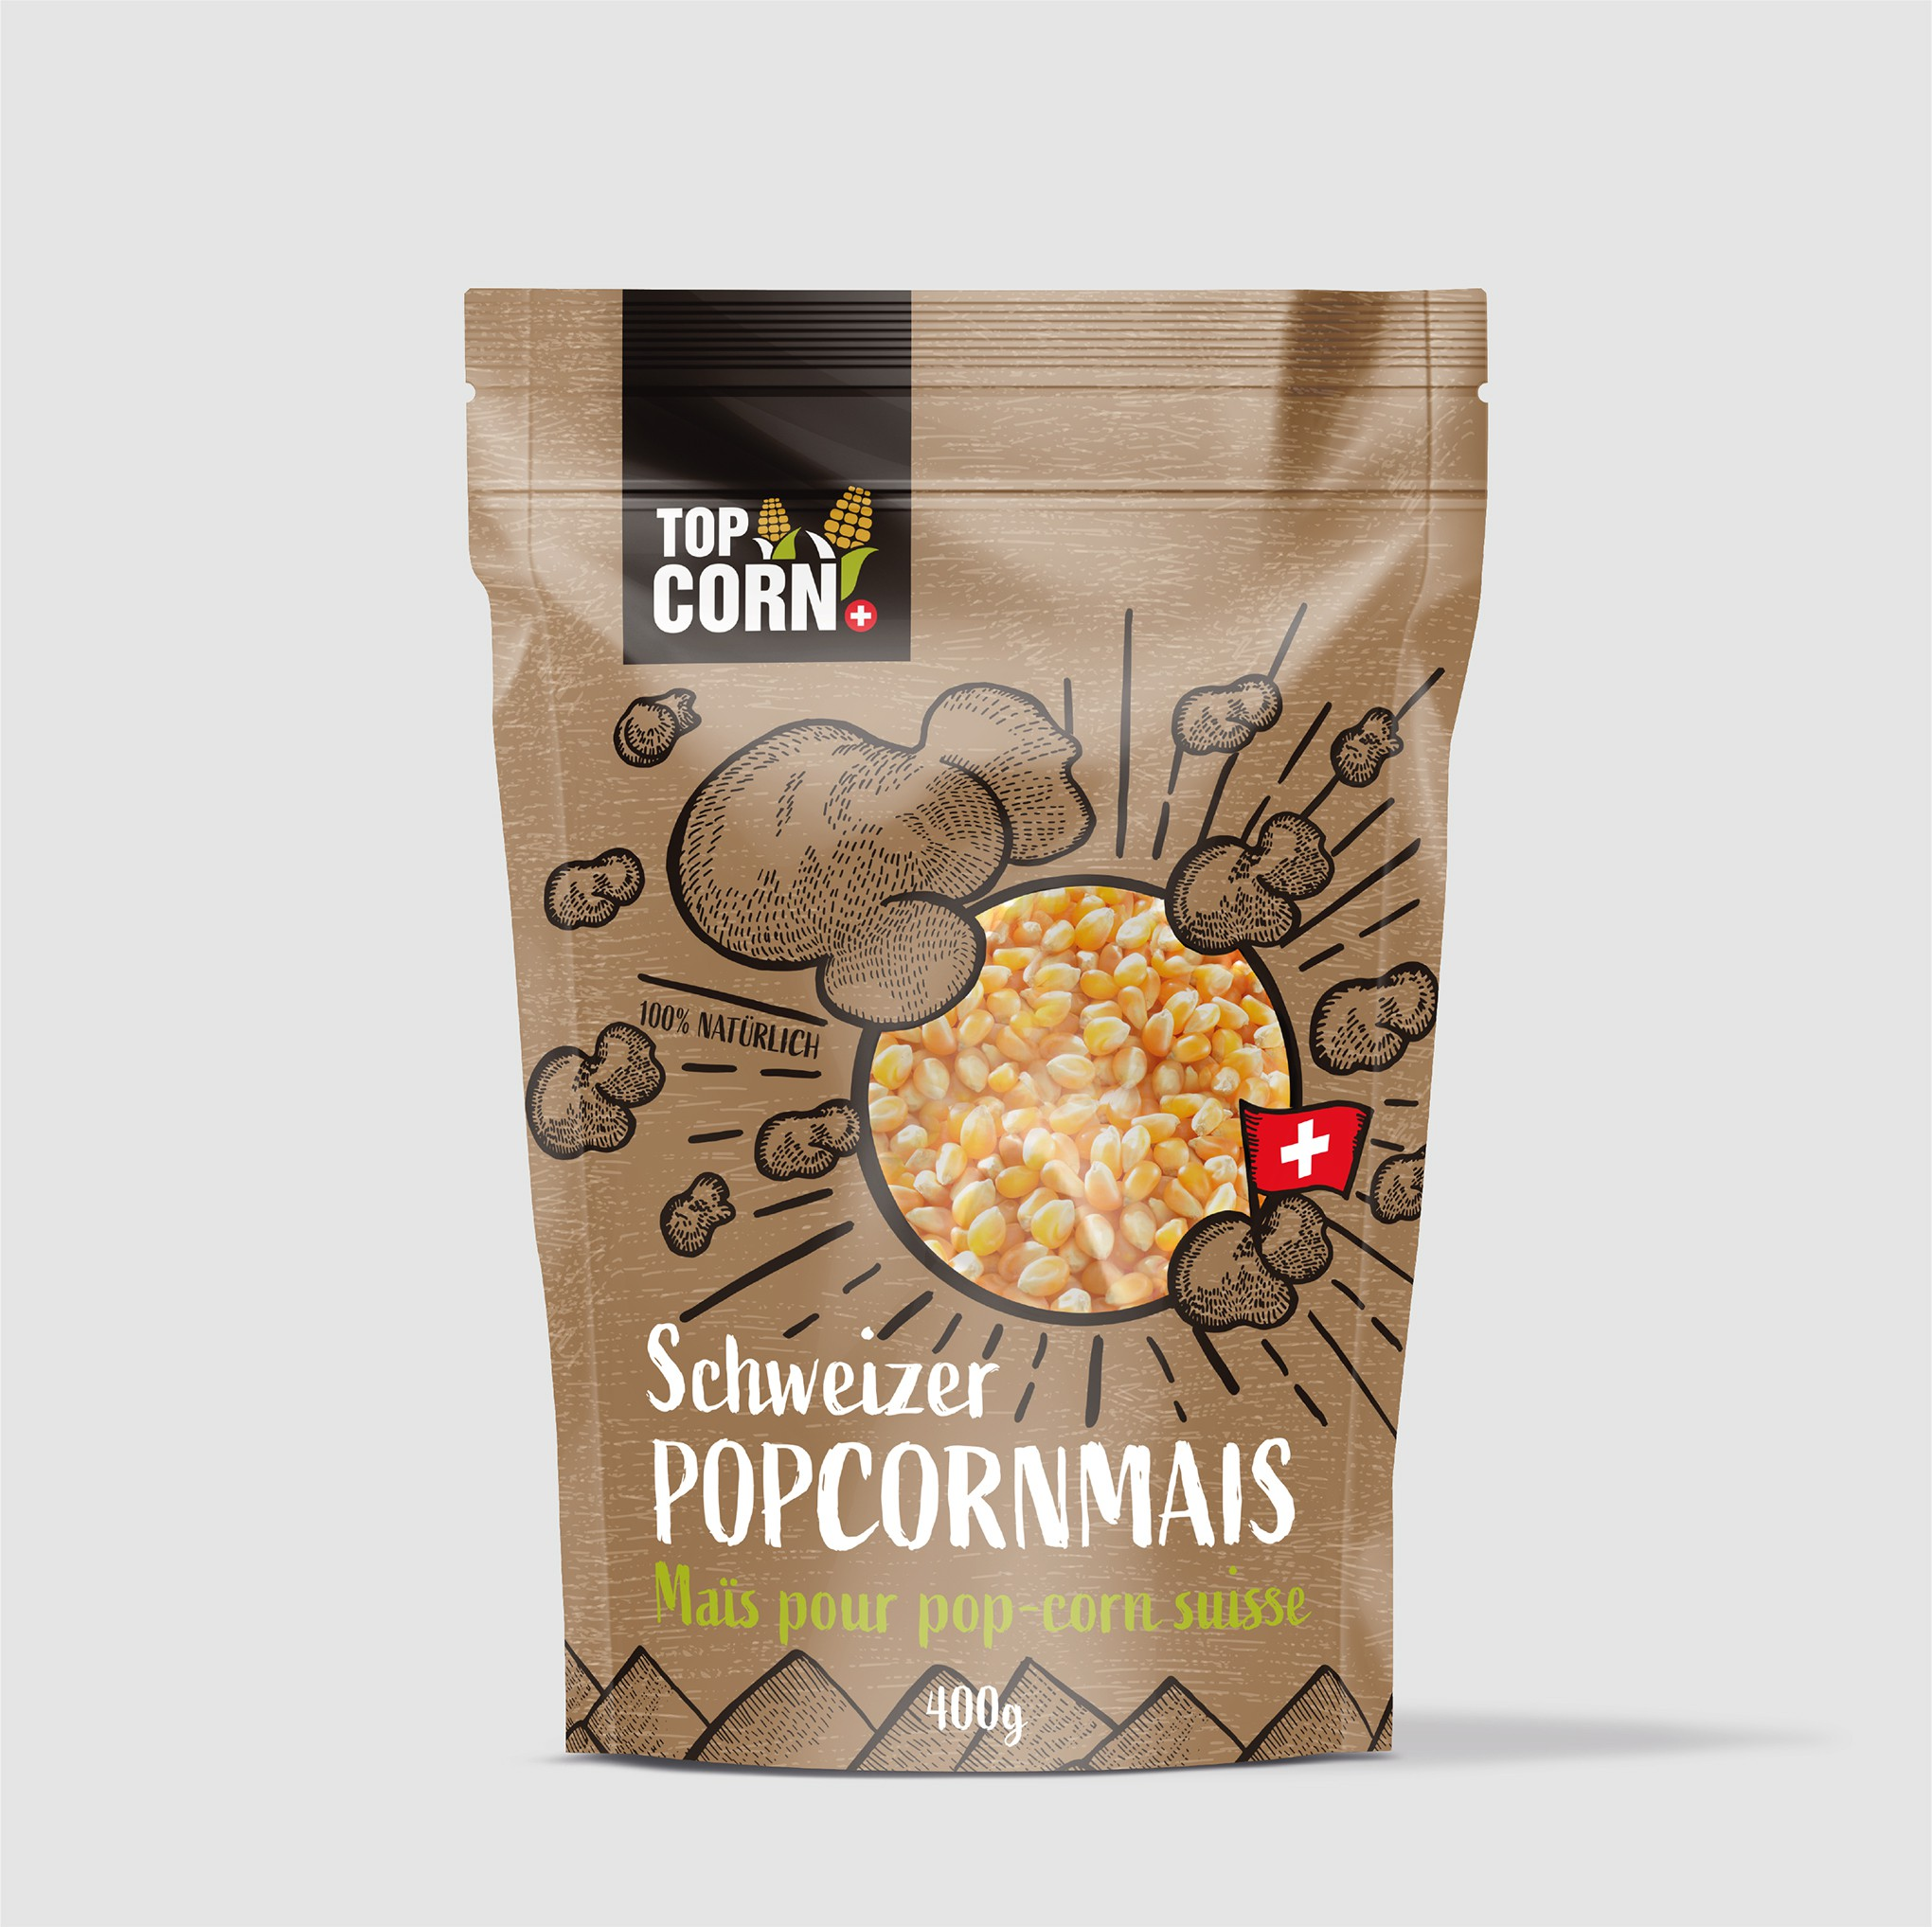 Wanted: A food packaging that conveys Swissness and naturalness